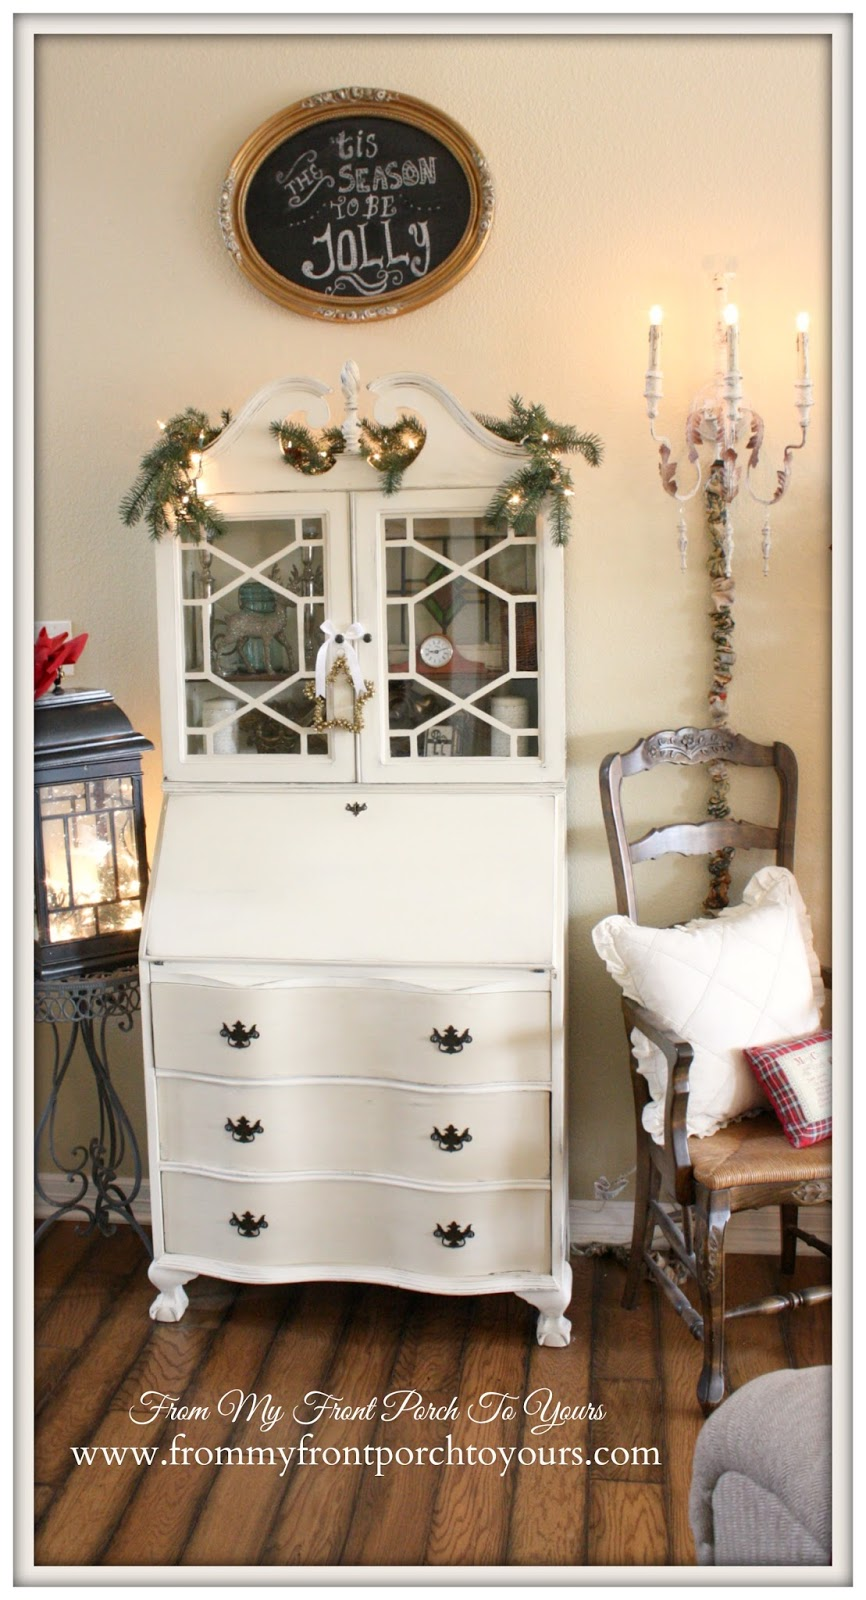 Vintage Secretary-Farmhouse Vintage Christmas Living Room- From My Front Porch To Yours